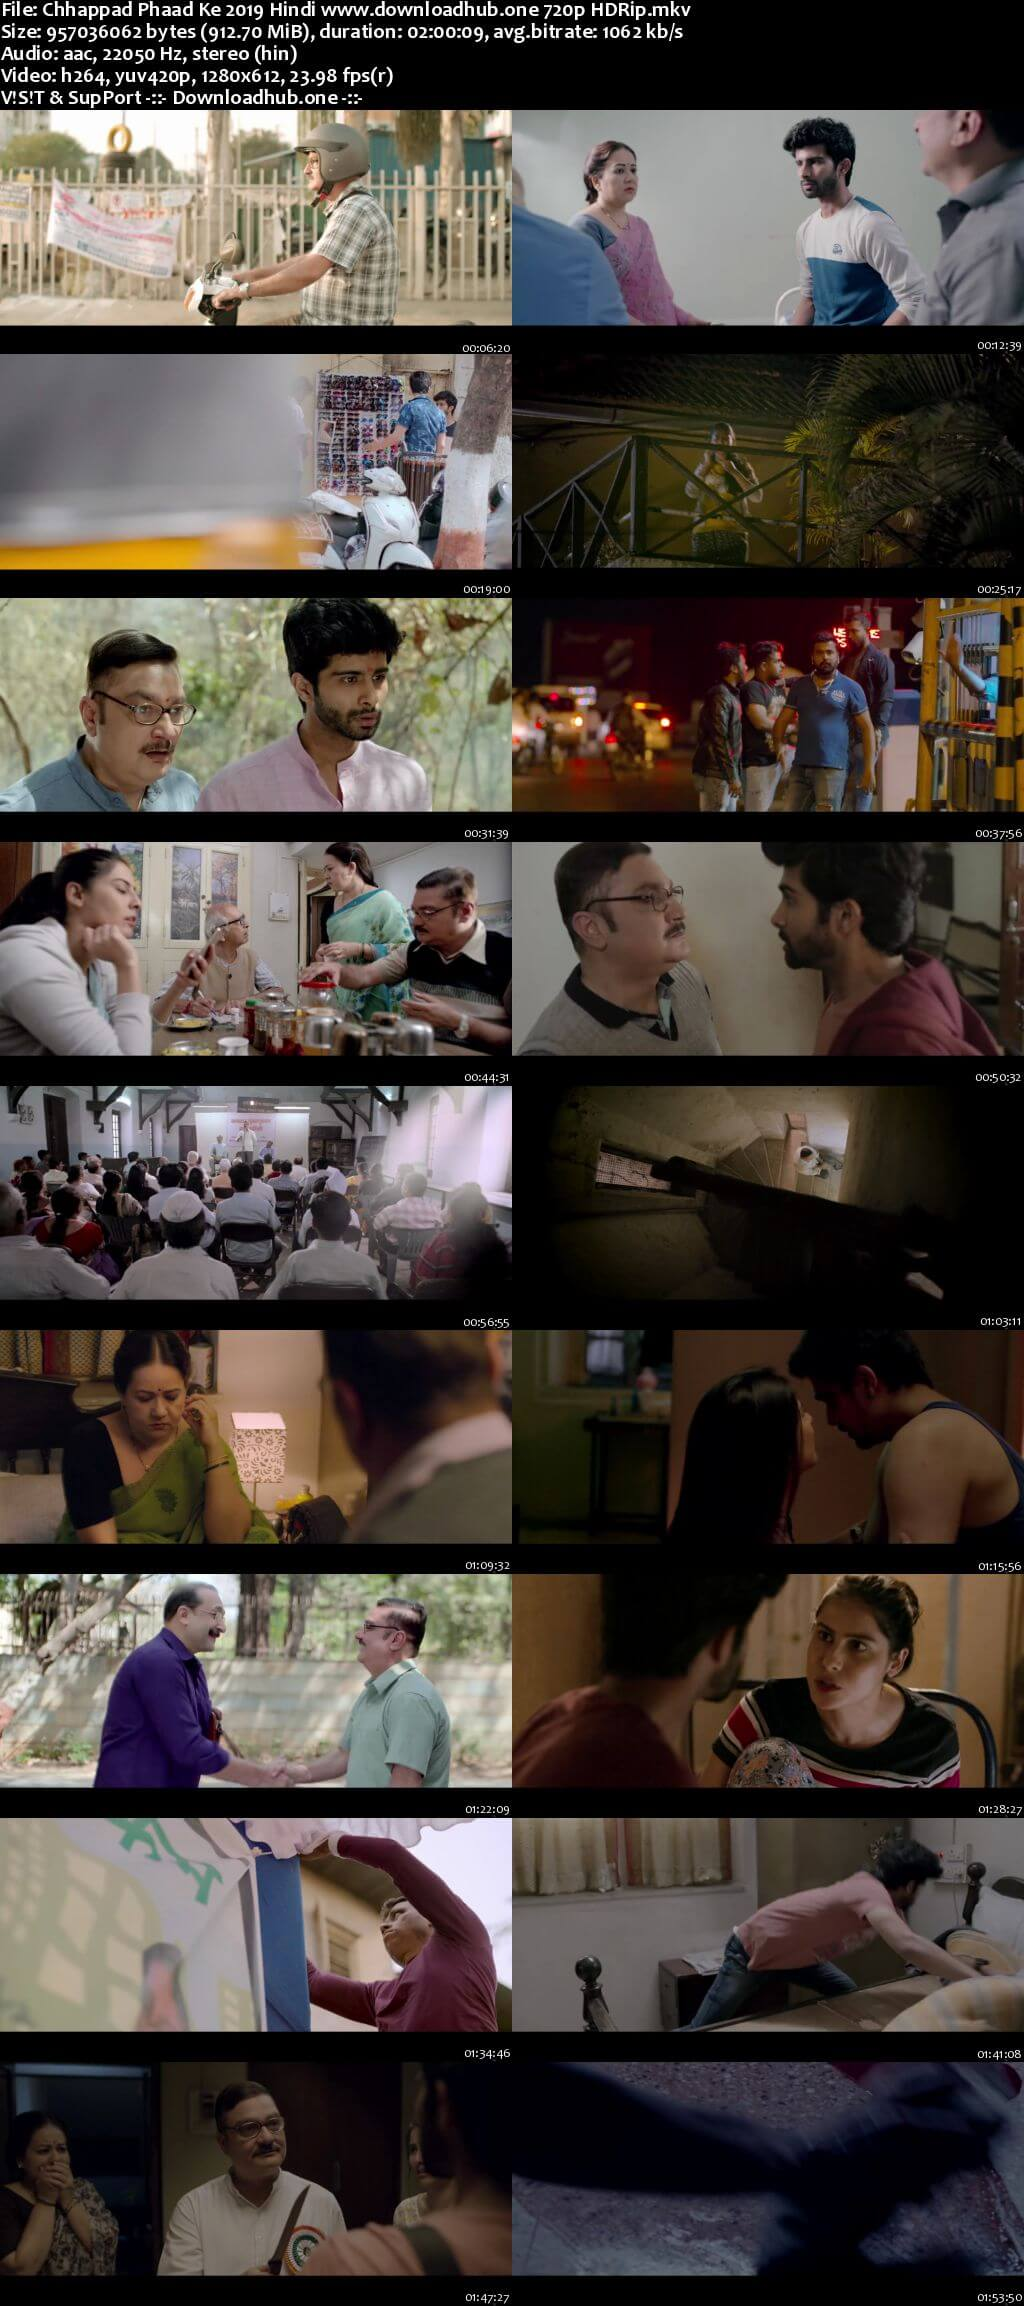 Chhappad Phaad Ke 2019 Hindi 720p HDRip x264